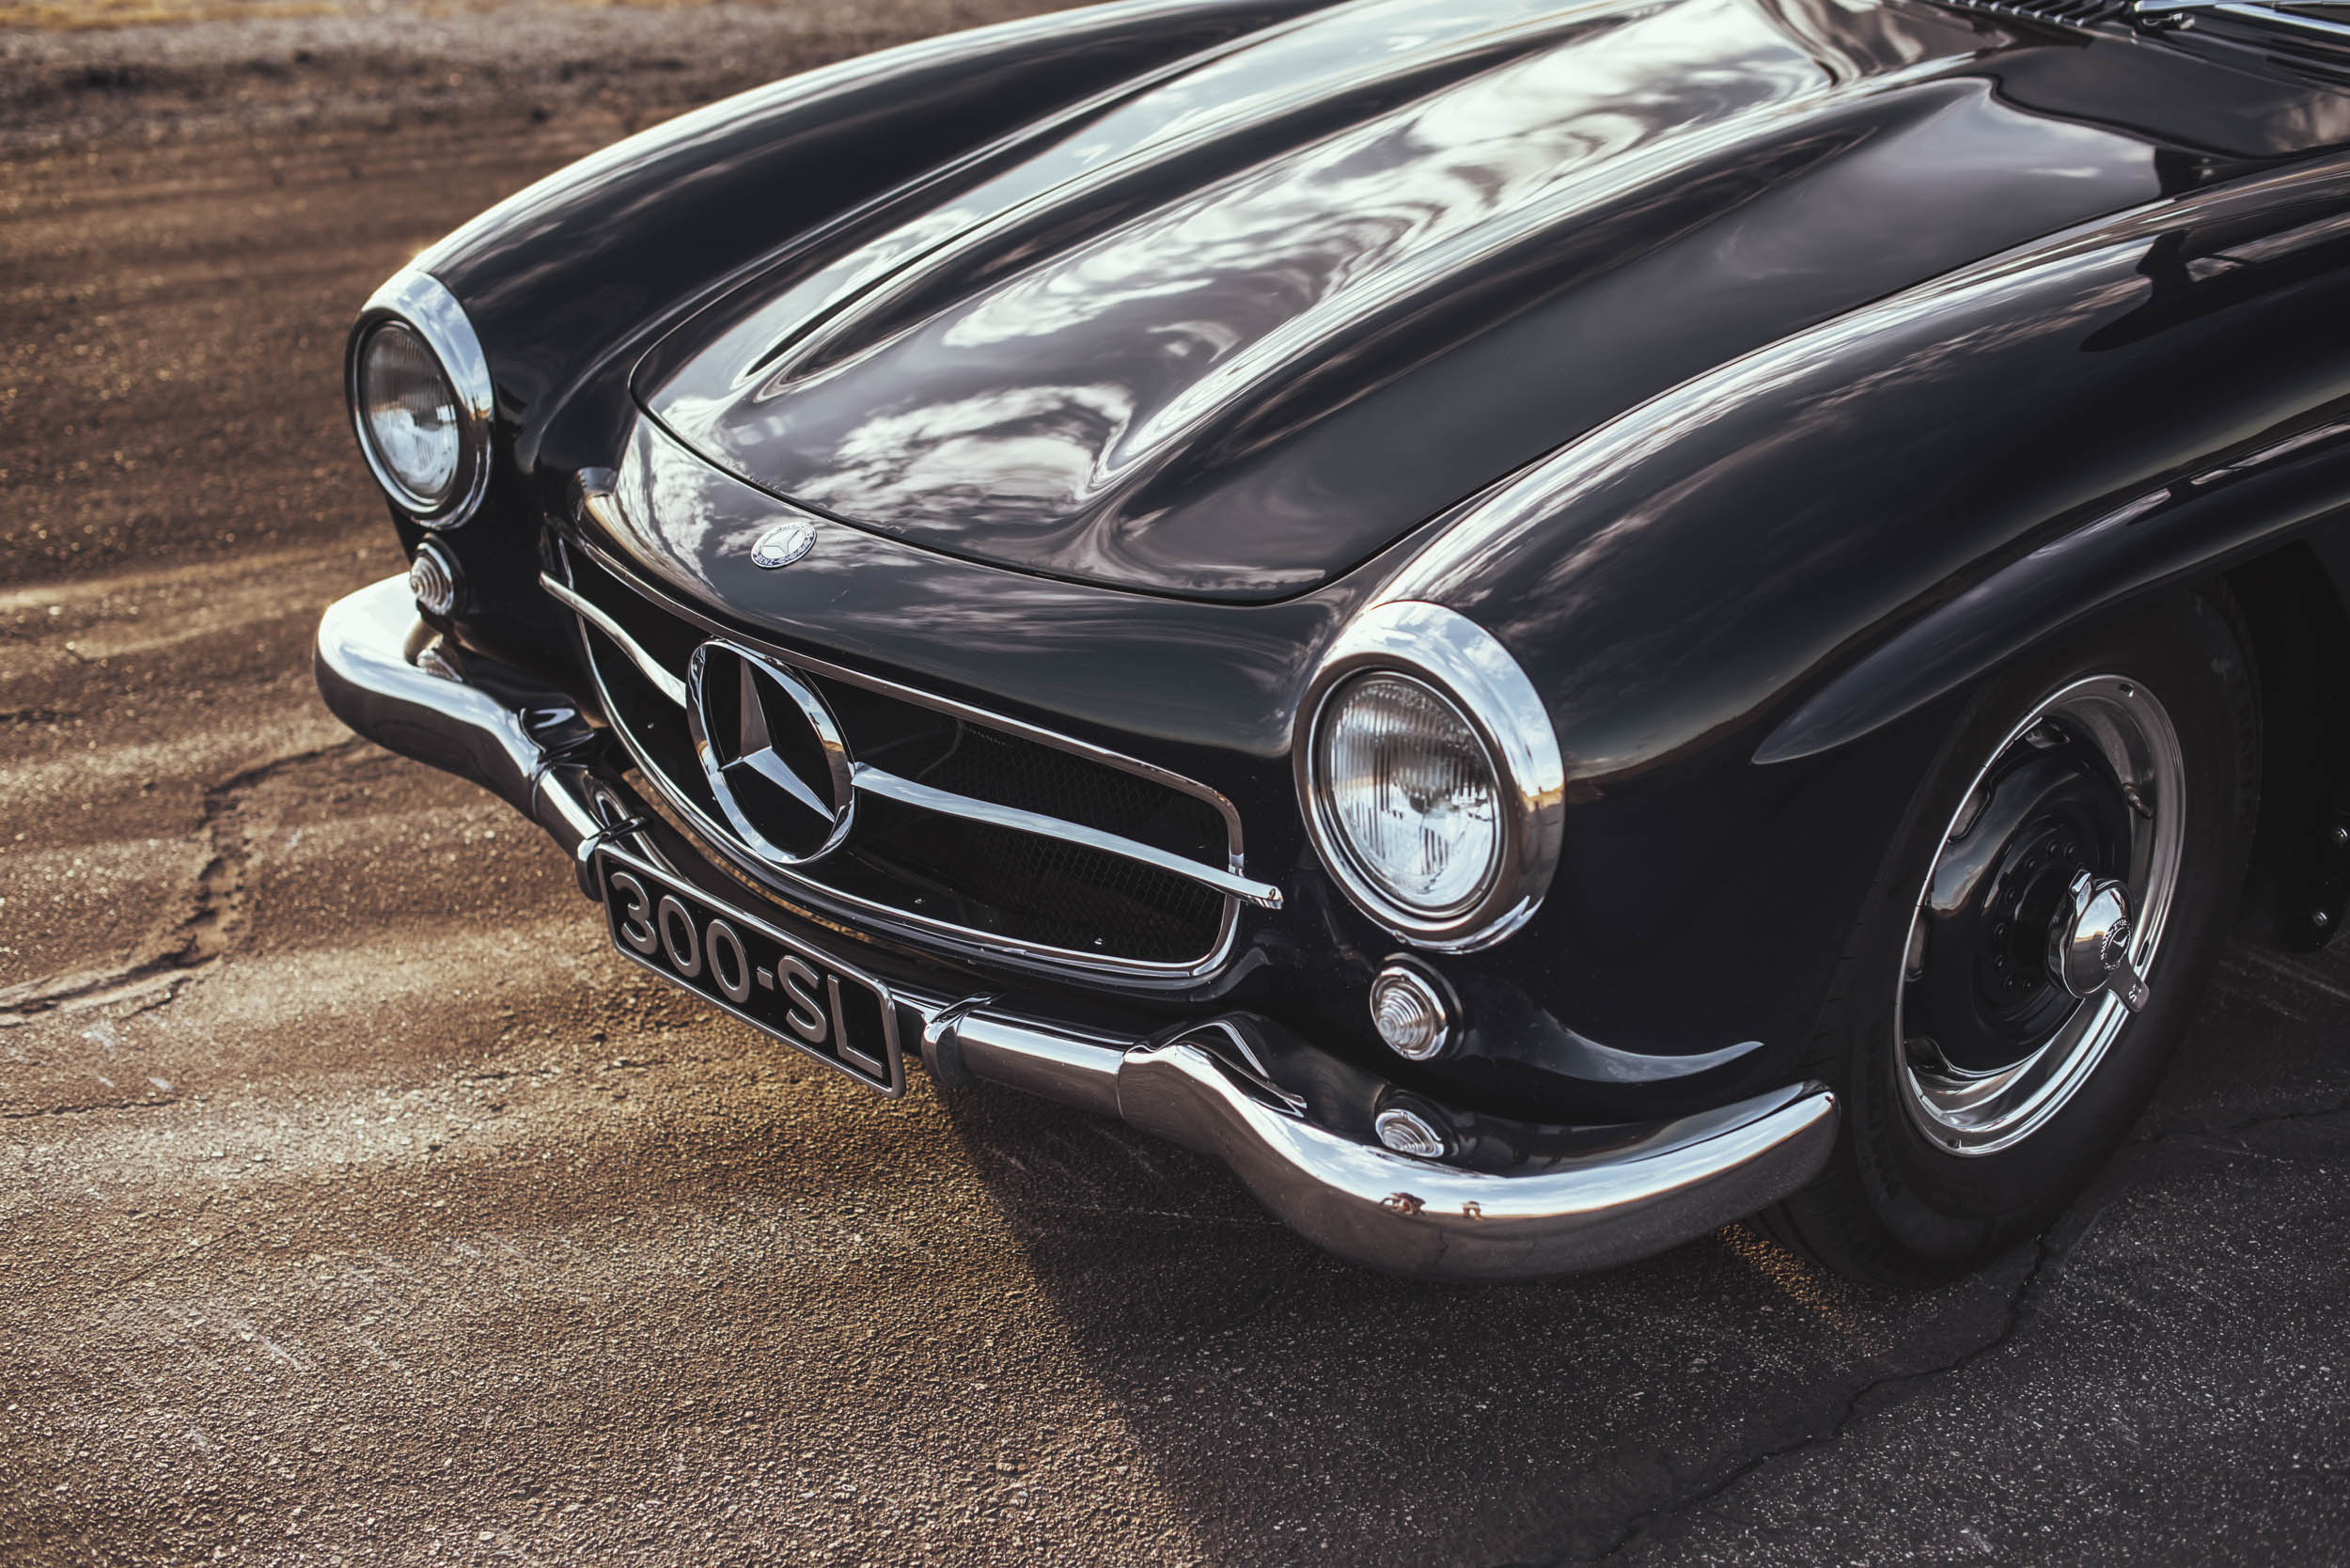 1955 Mercedes-Benz 300 SL Gullwing nose